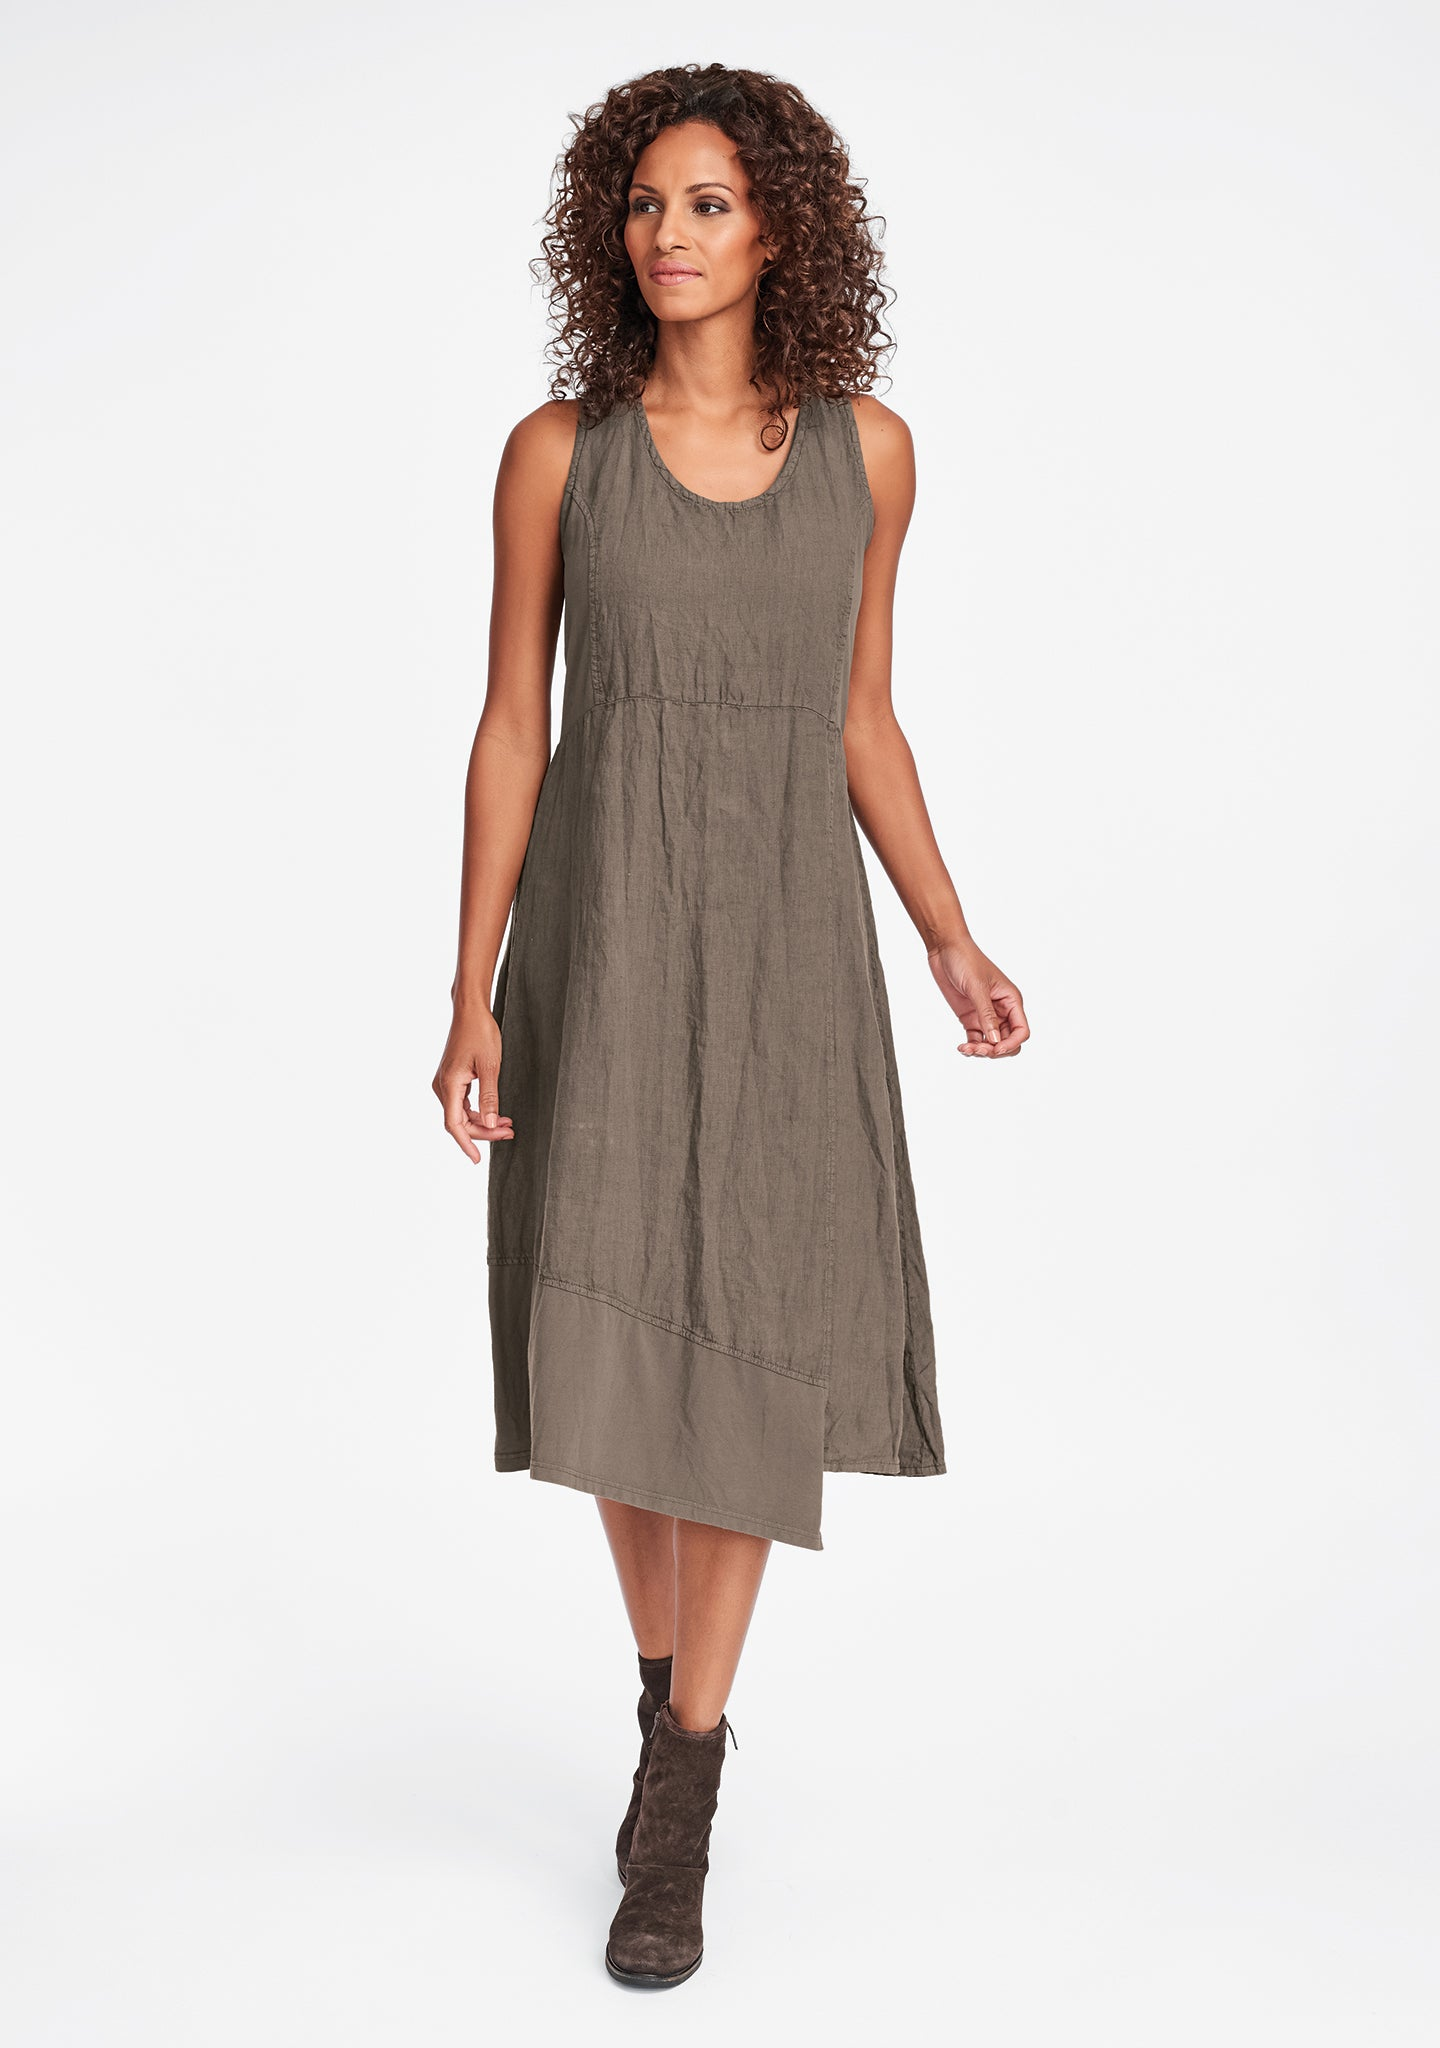 midtown dress linen midi dress brown